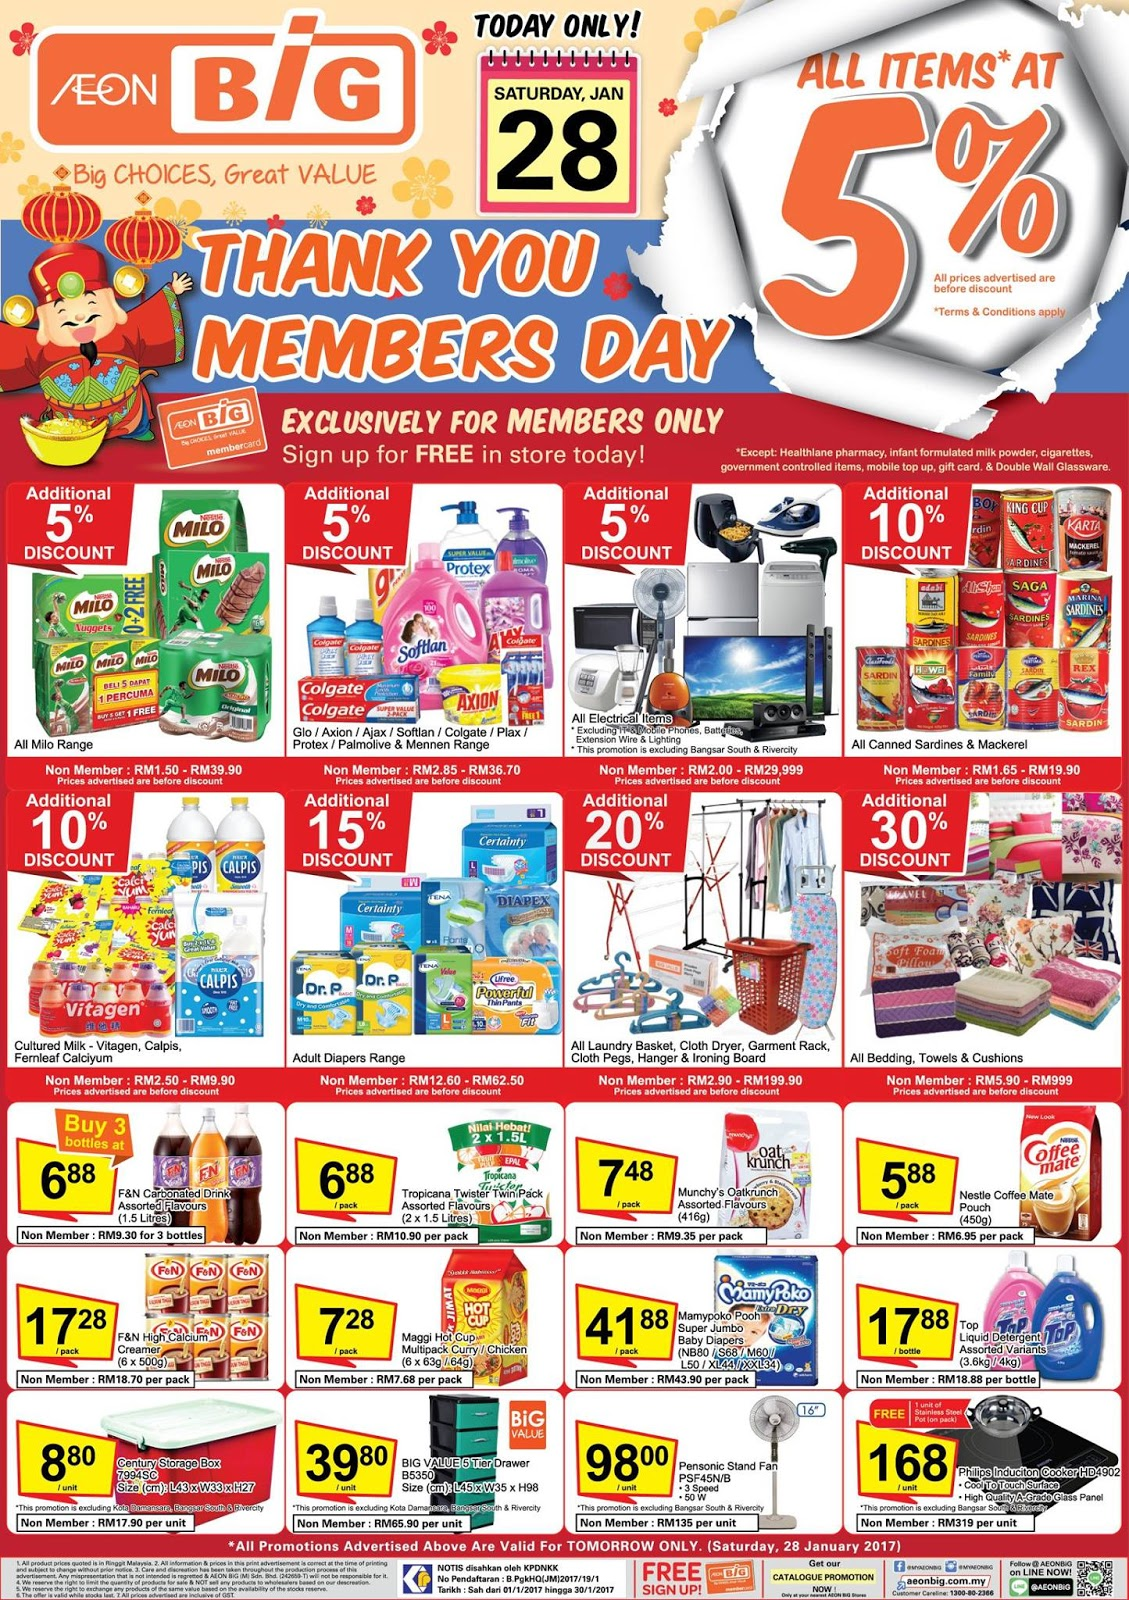 Aeon Big Members Day All Items 5 Discount 28 January 2017